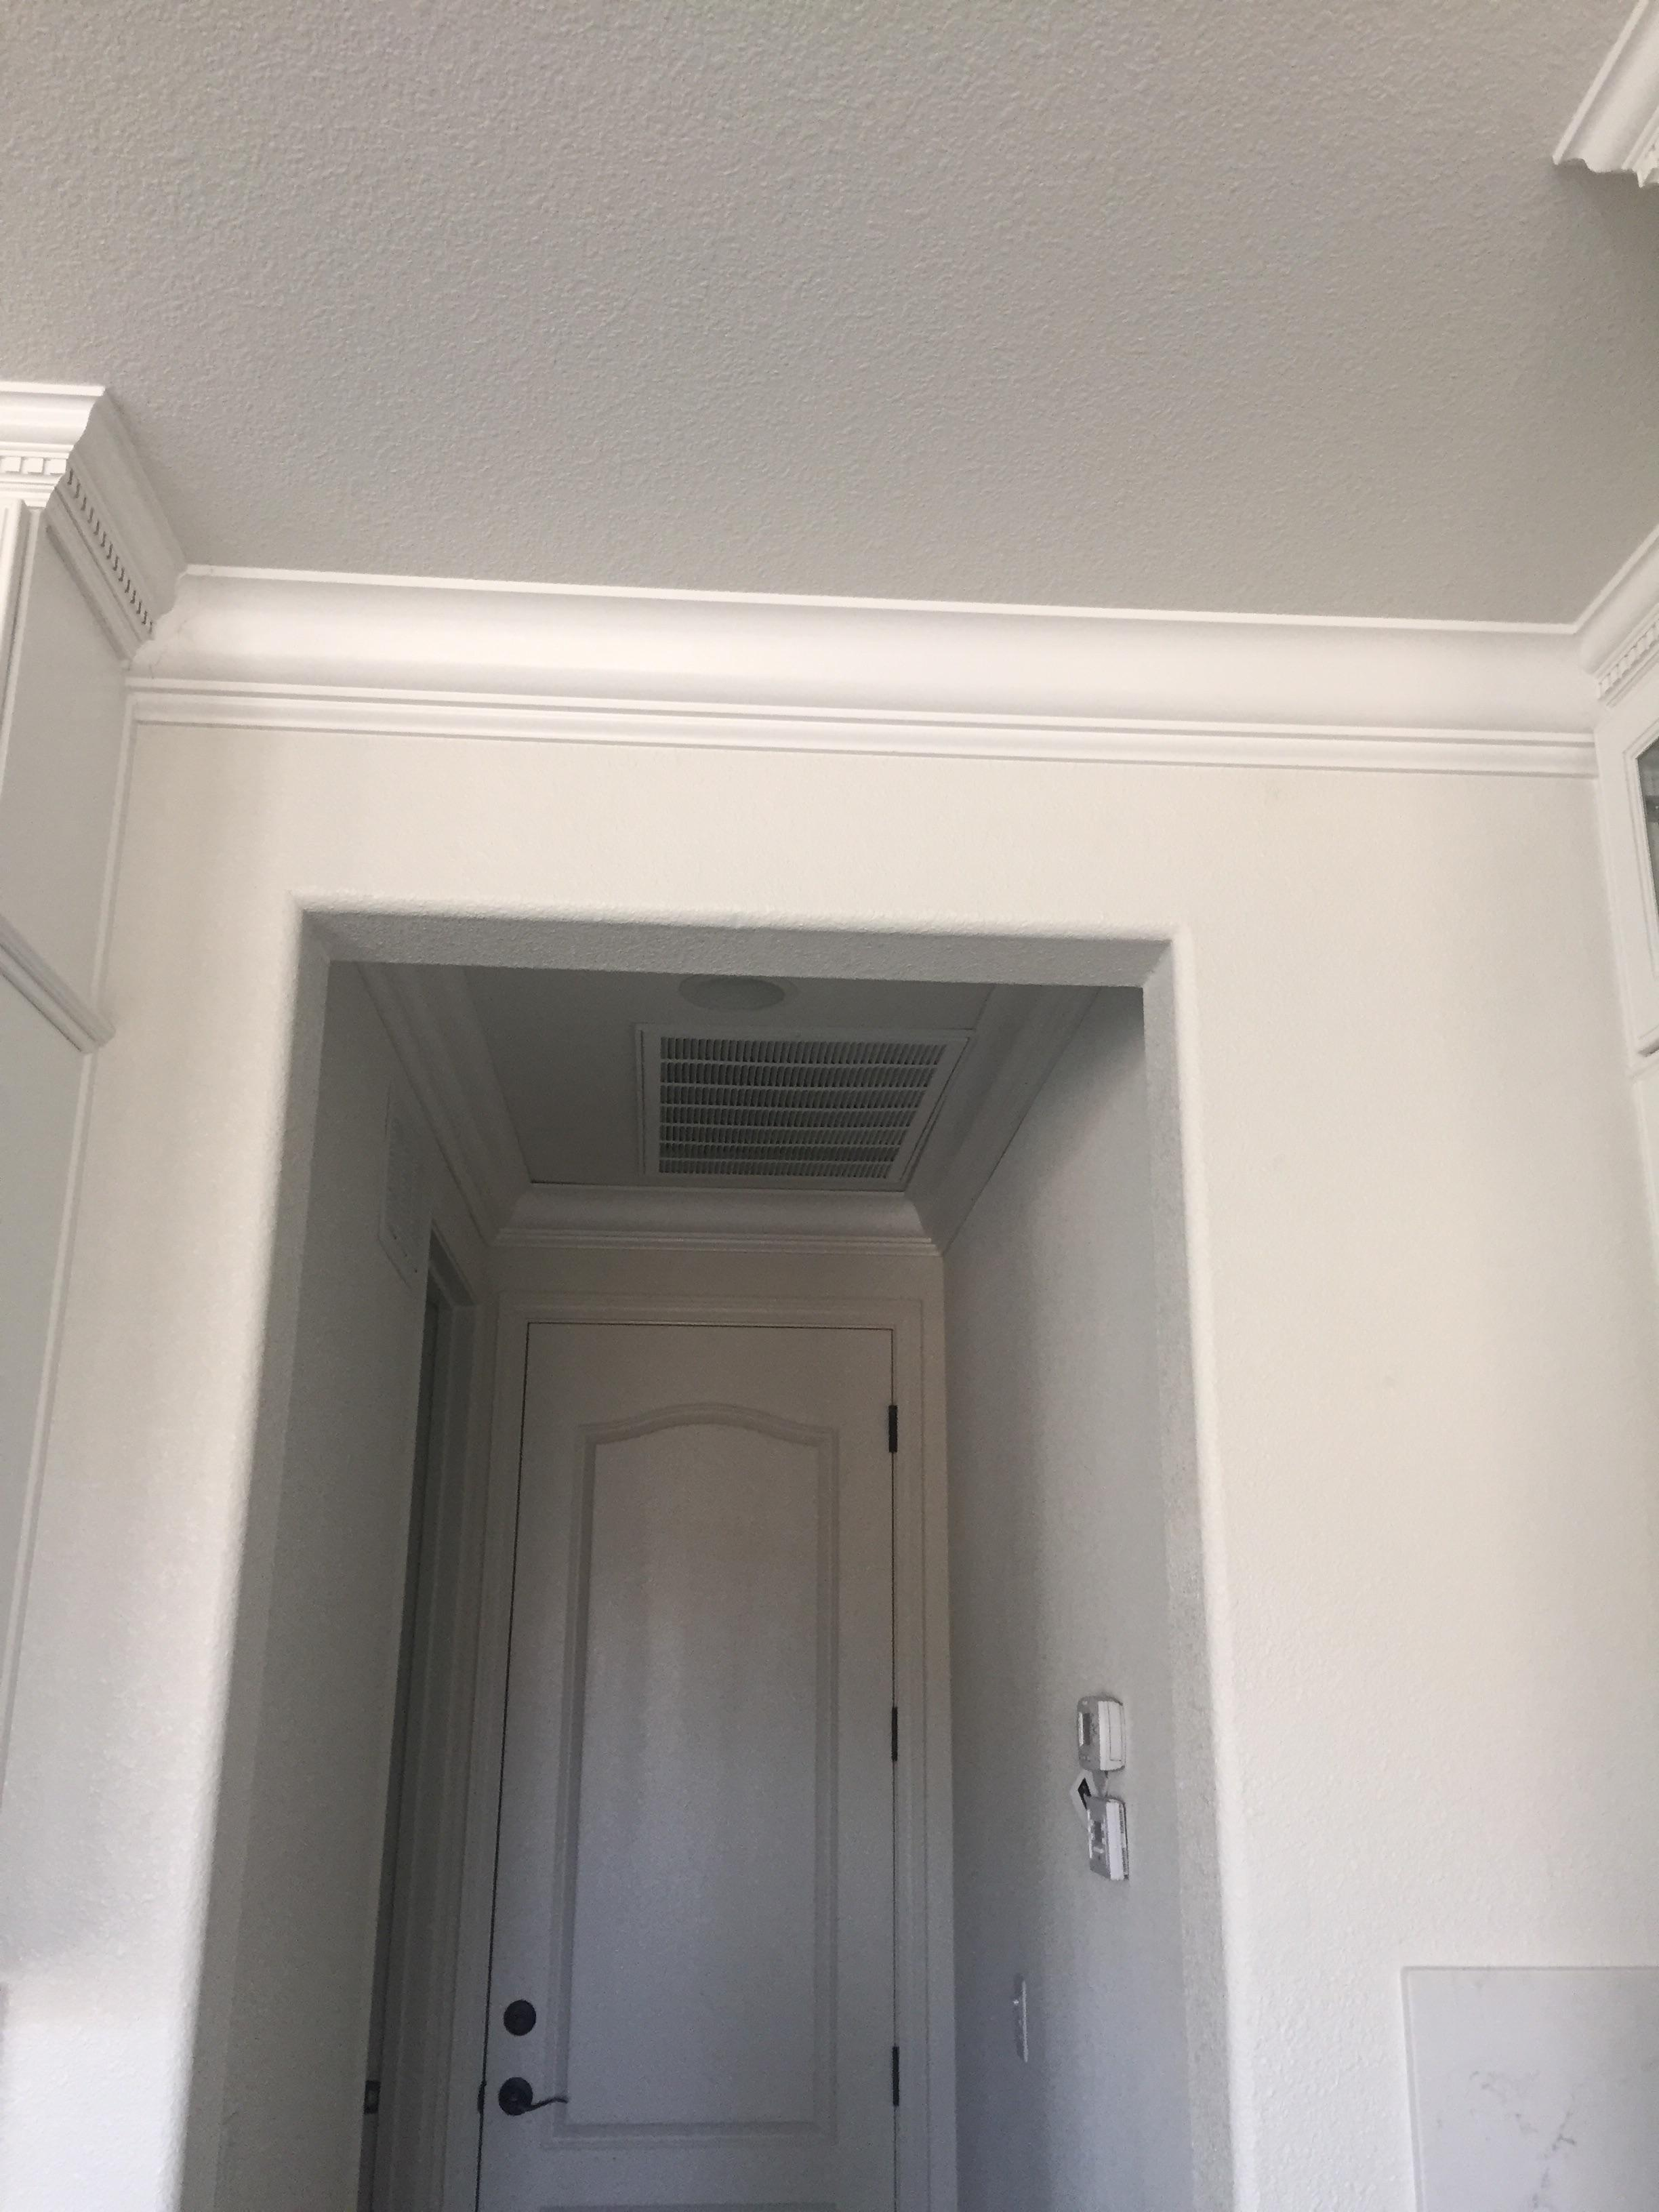 Joining 2 different crown moldings-image_1441998426305.jpg